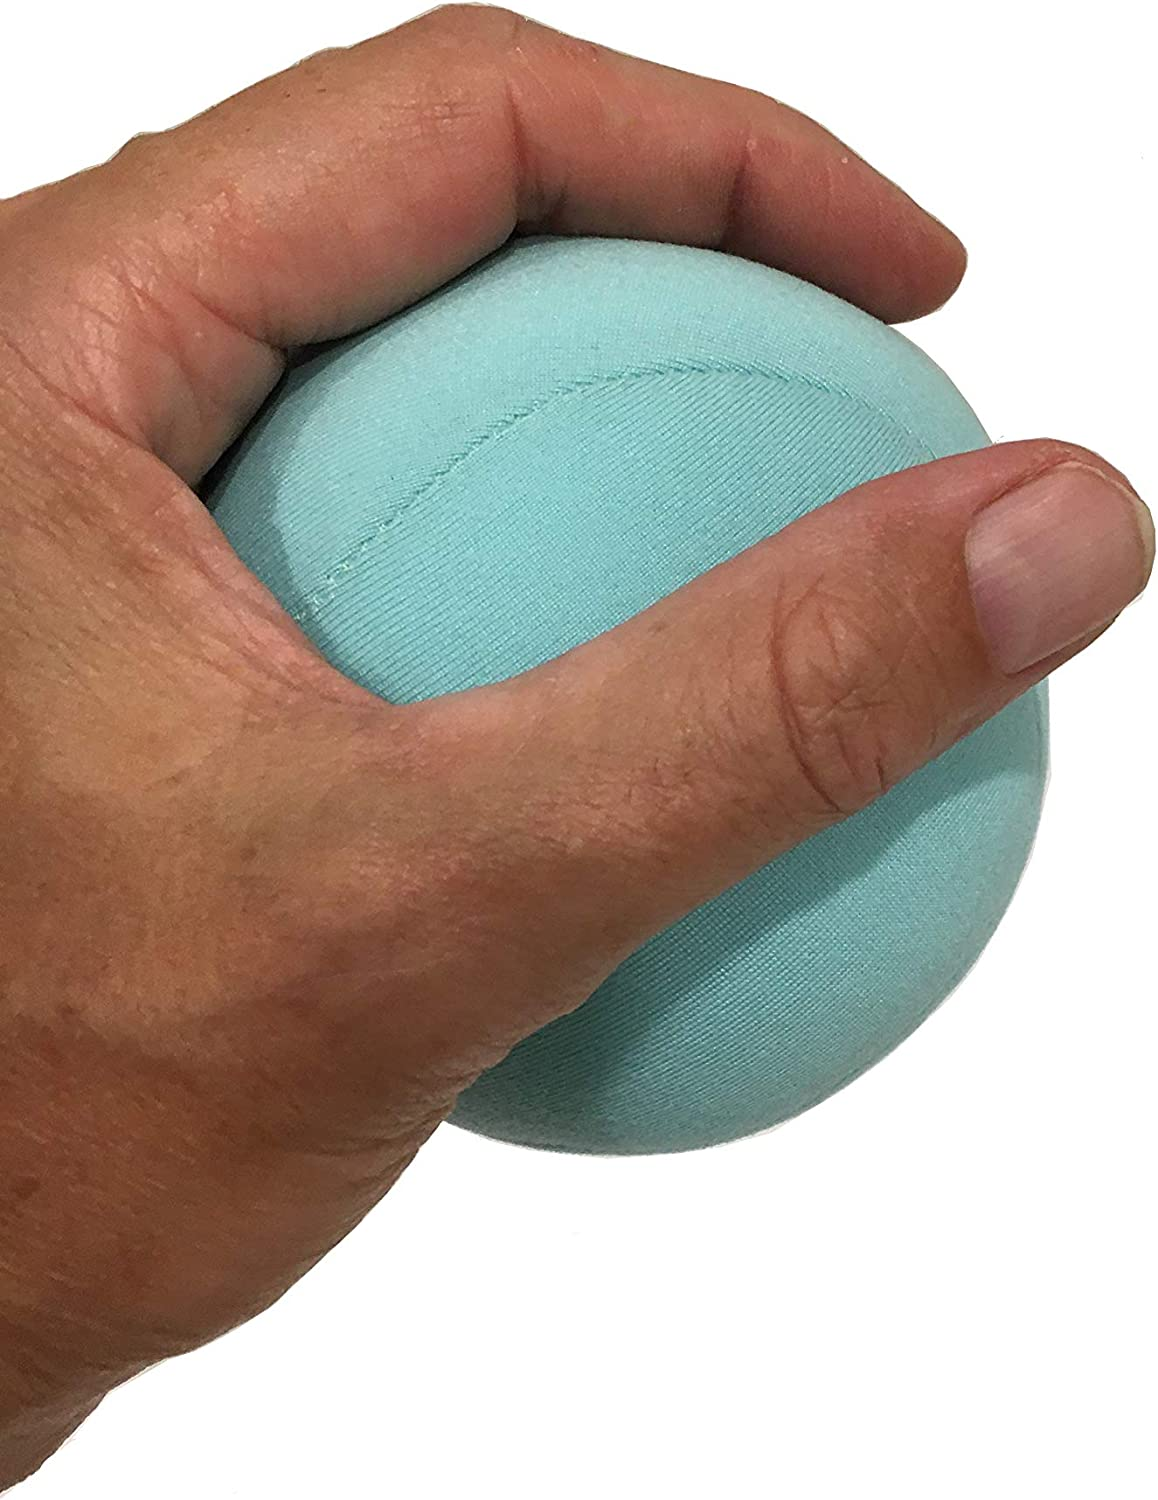 Mushy Pillows Stress Ball and Support 2 Anxiety Ranking TOP15 Cushion Relief Time sale